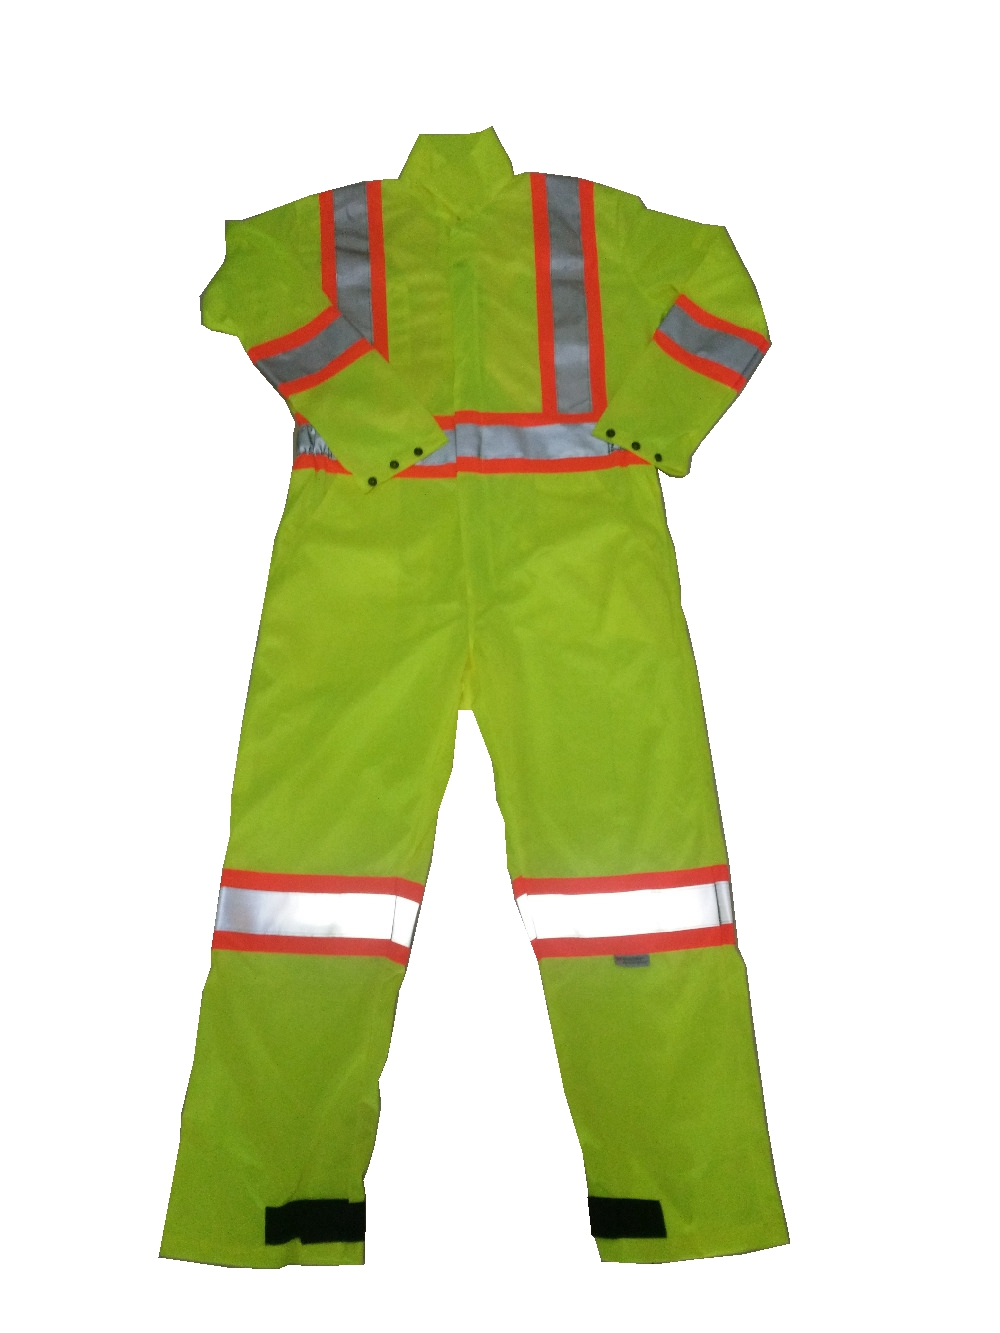 Fluorescence Yellow High Visibility Safety workwear Hi Viz Work Coat coverall workwear coveralls suits раннее развитие умница мир на ладошке 4